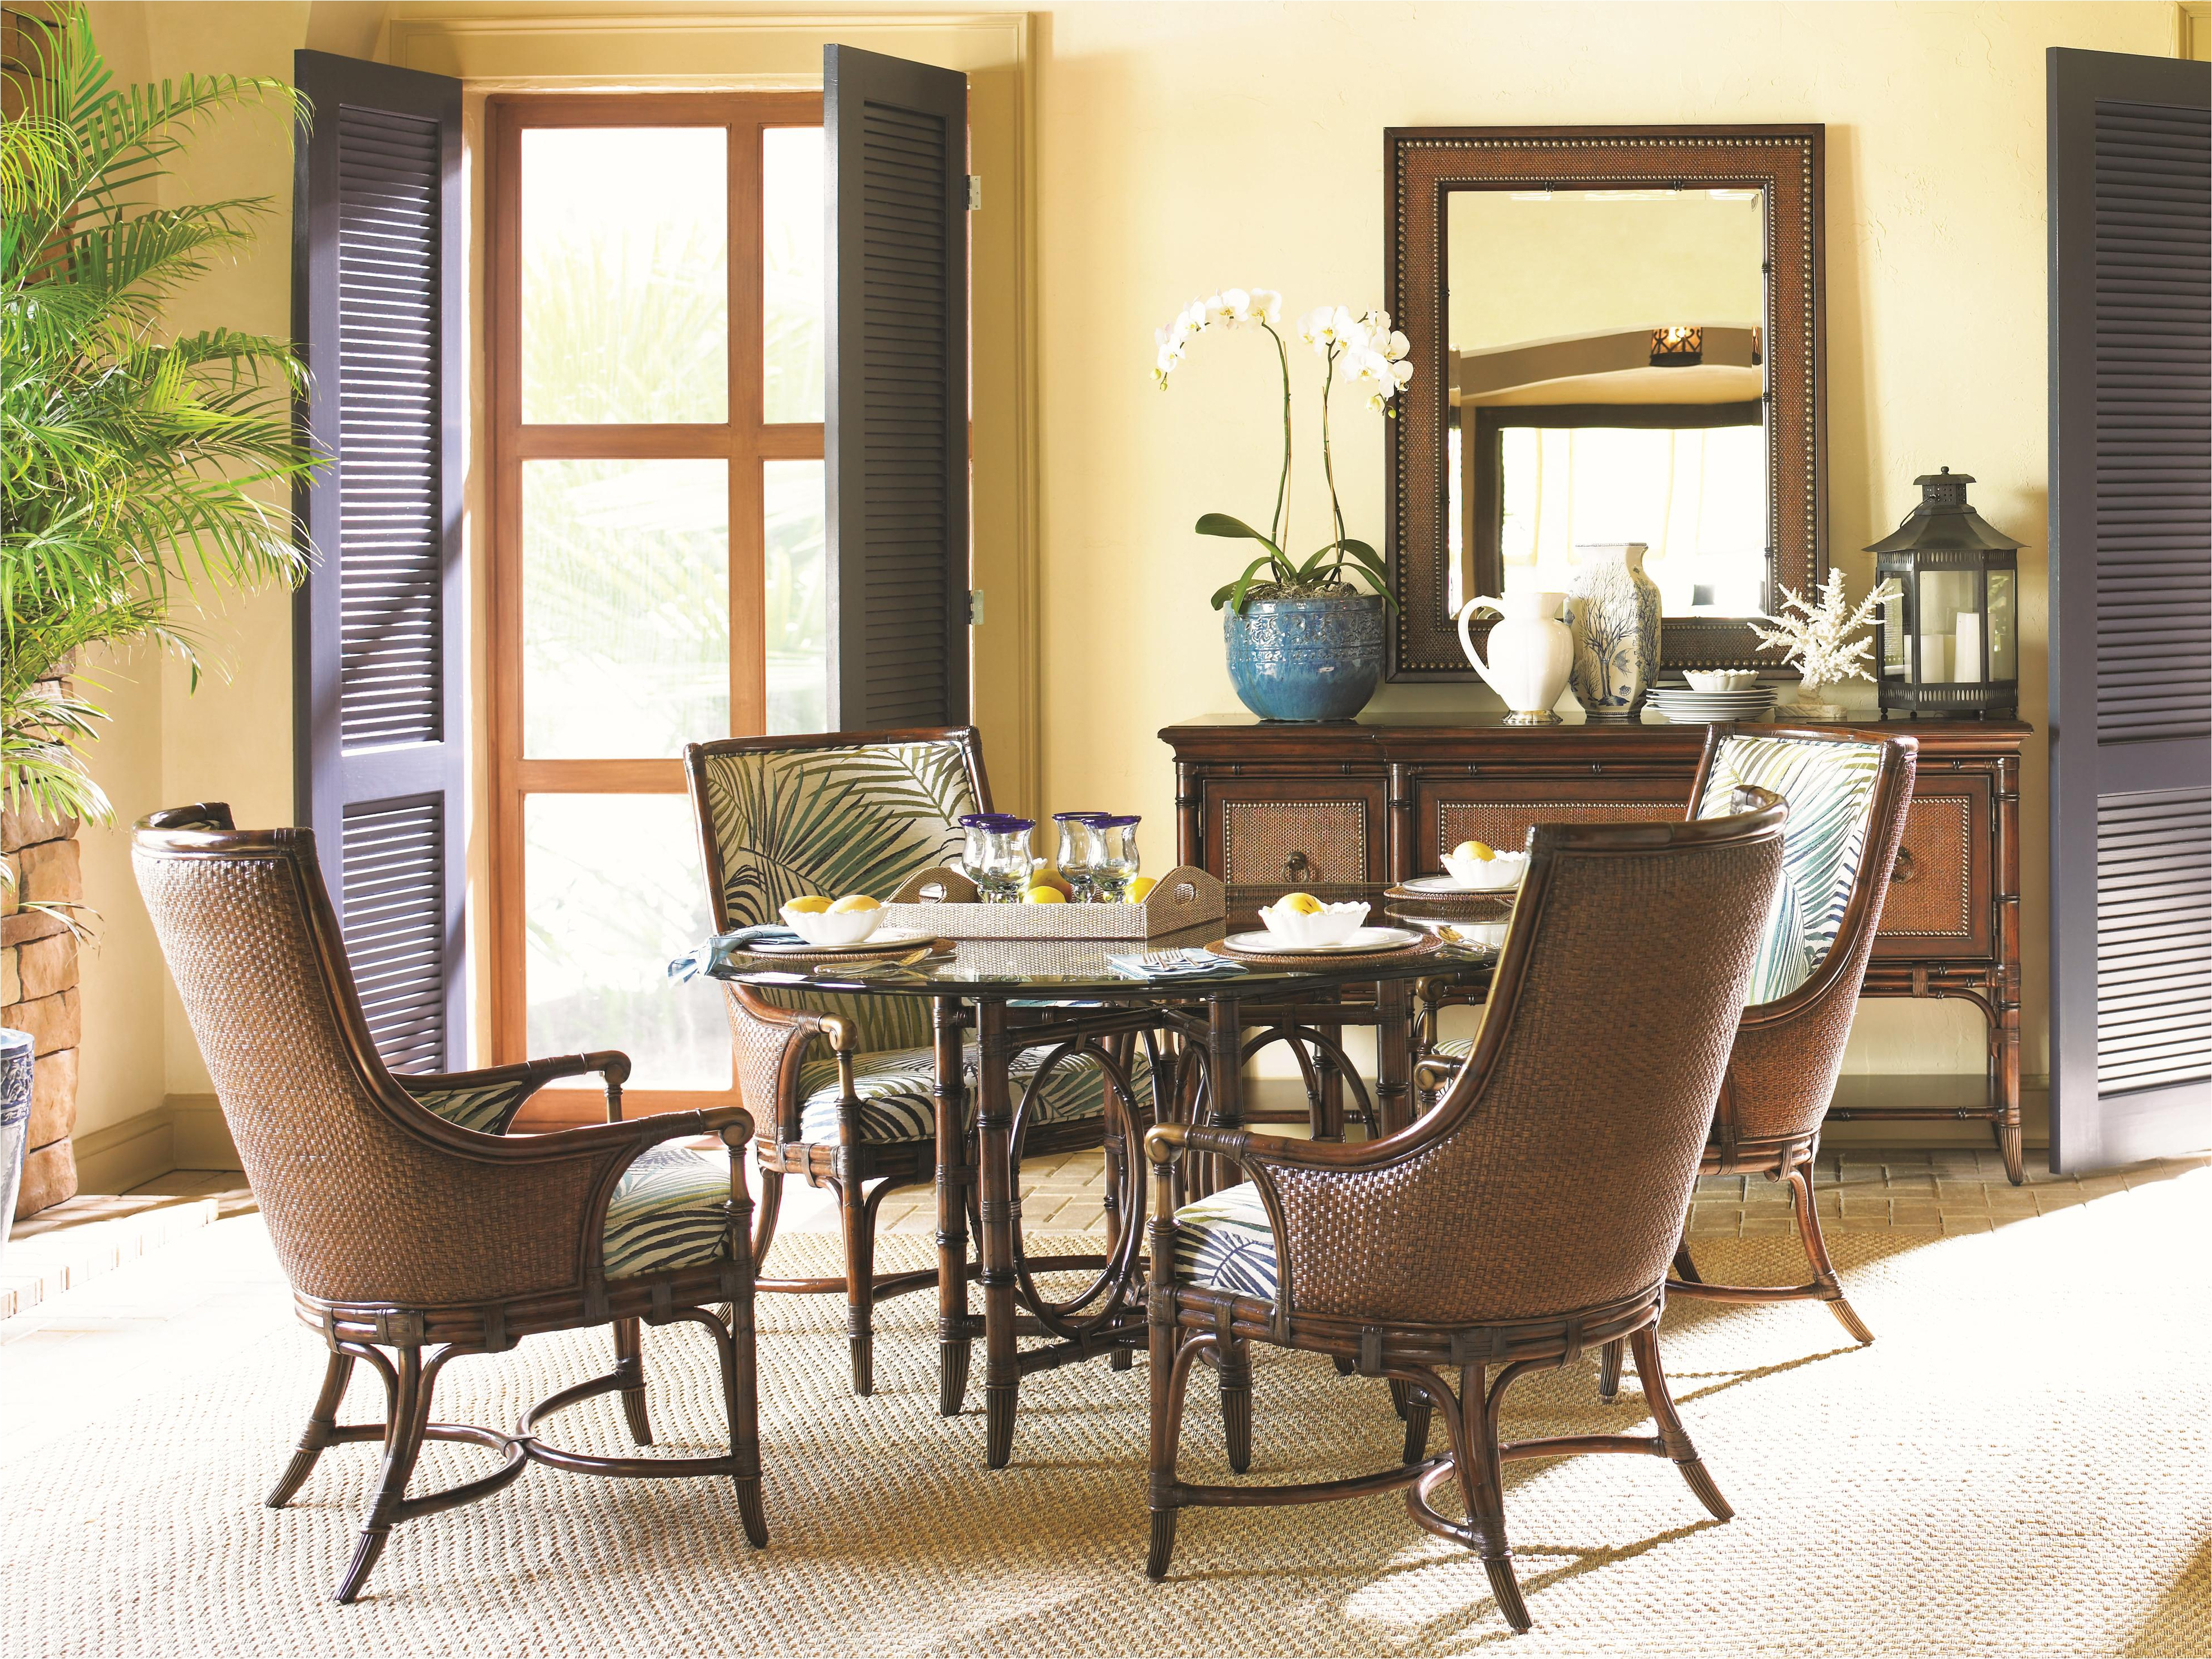 Hudson S Furniture Clearwater Fl tommy Bahama Home at Hudsons Furniture Tampa St Petersburg